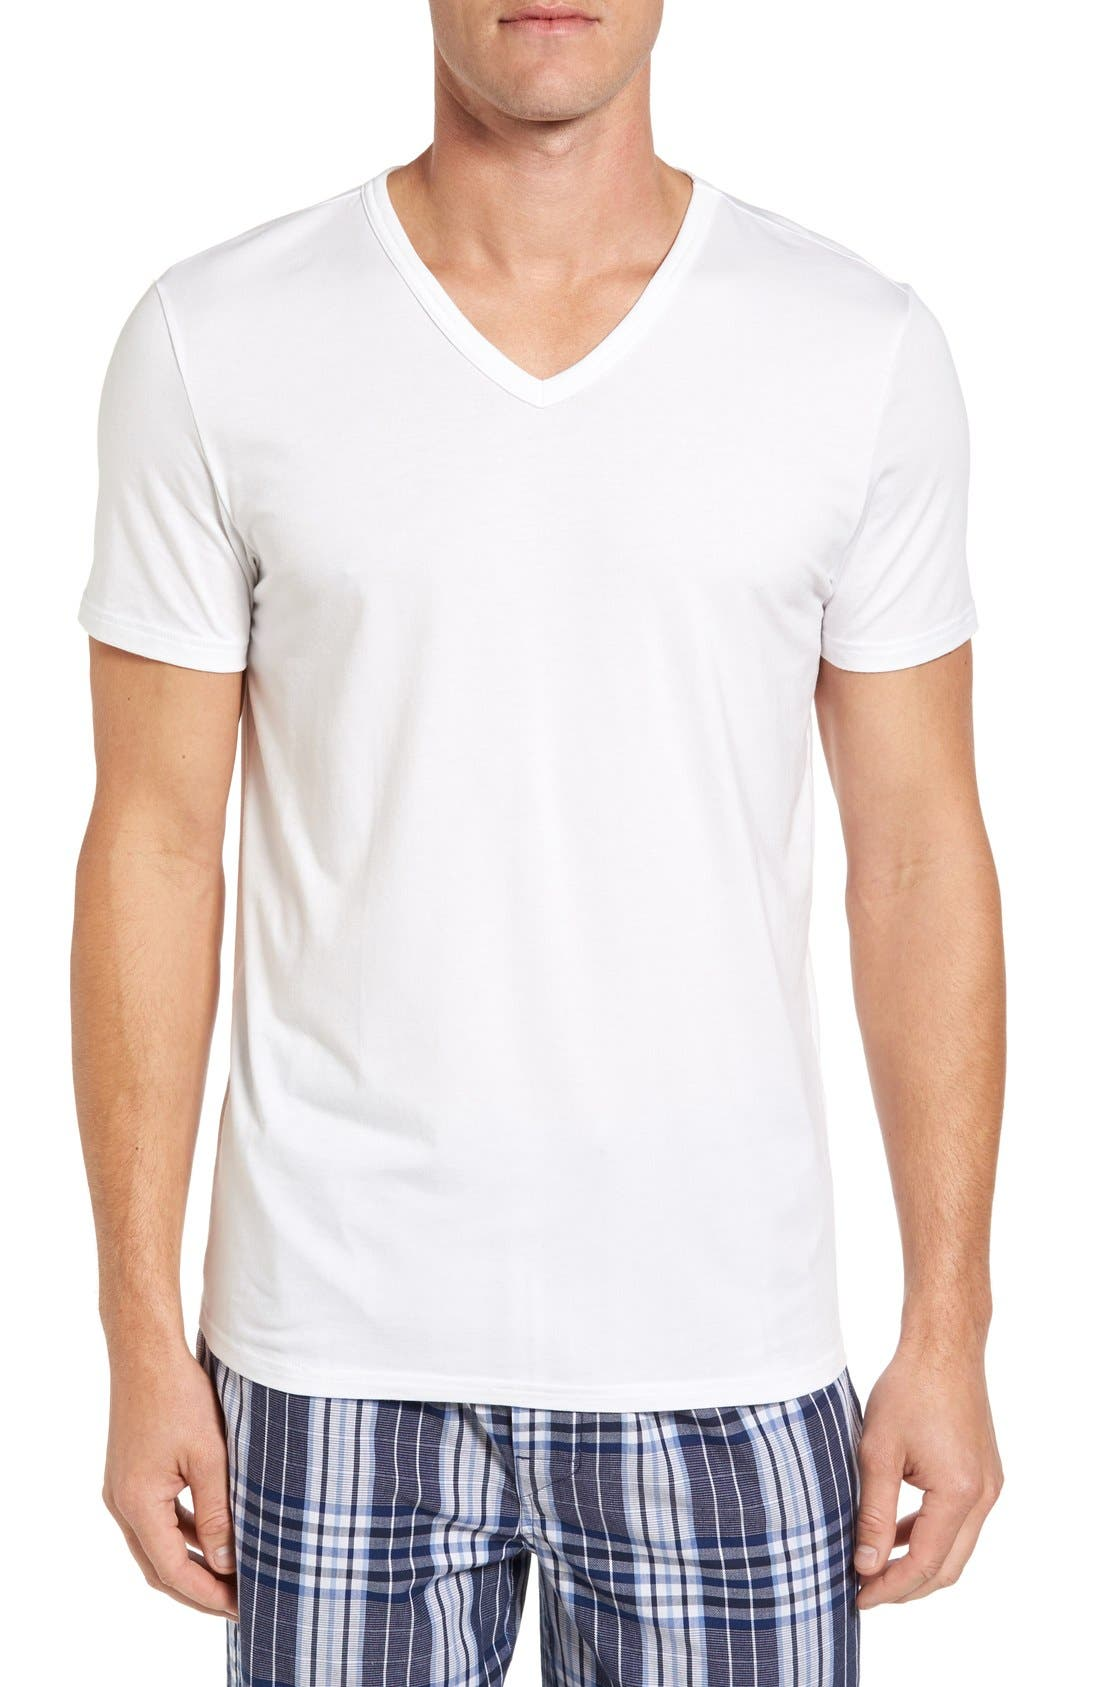 Alternate Image 1 Selected - Nordstrom Men's Shop Micromodal V-Neck T-Shirt